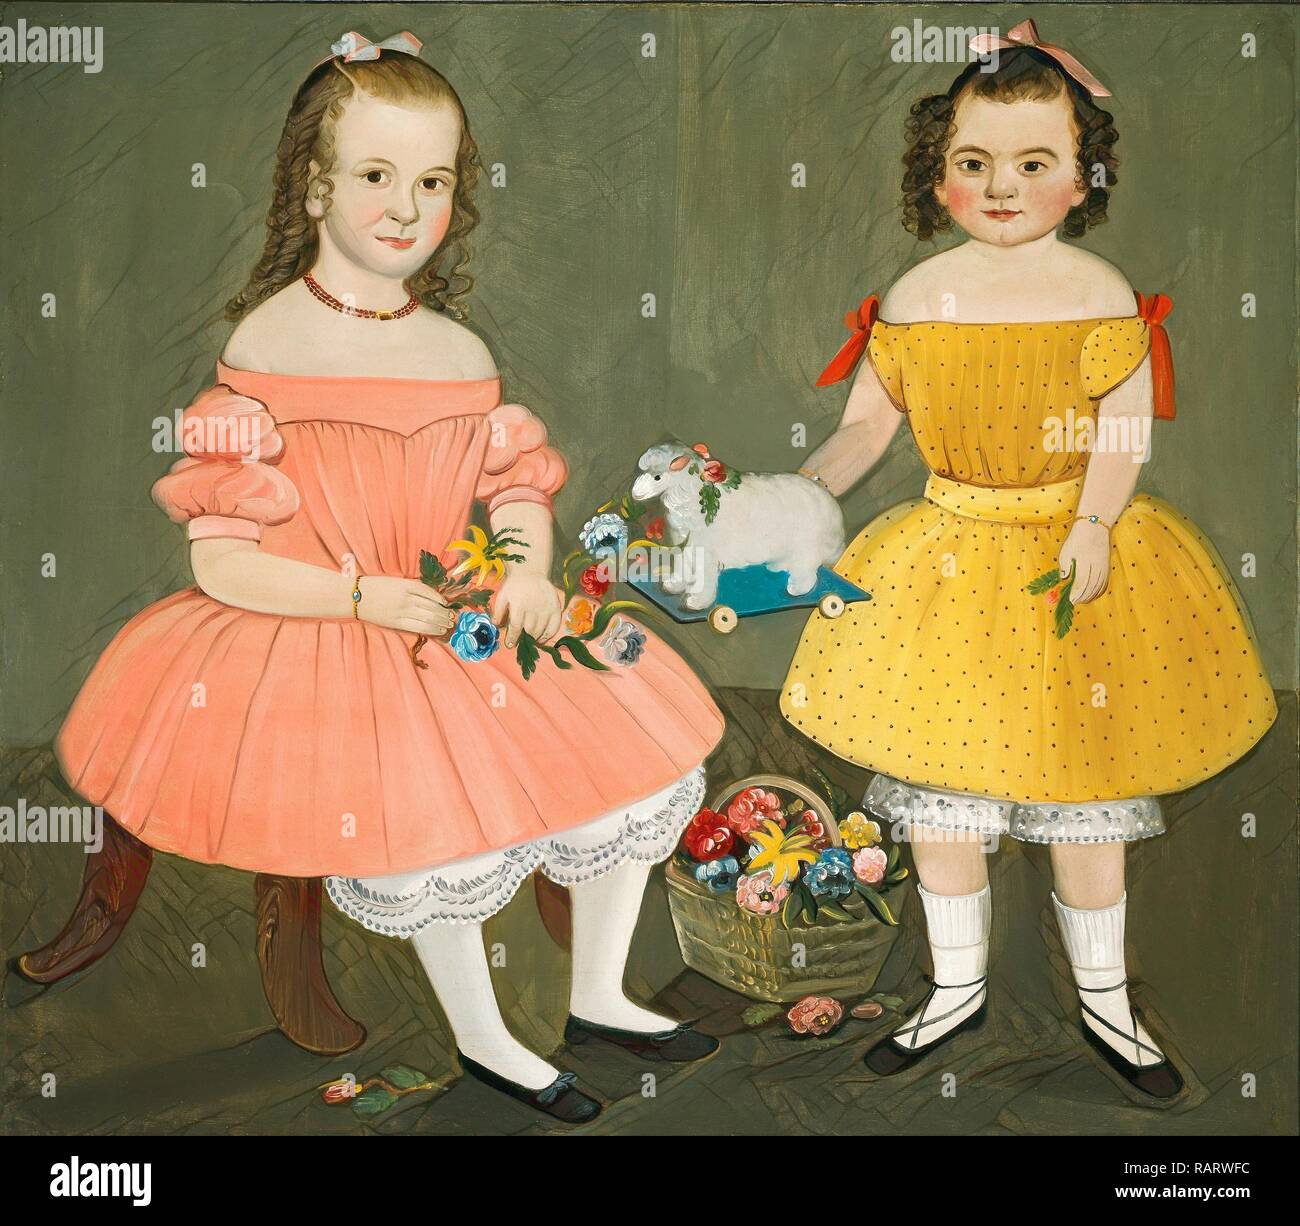 William Matthew Prior, The Burnish Sisters, American, 1806-1873, 1854, oil on canvas. Reimagined by Gibon. Classic reimagined - Stock Image